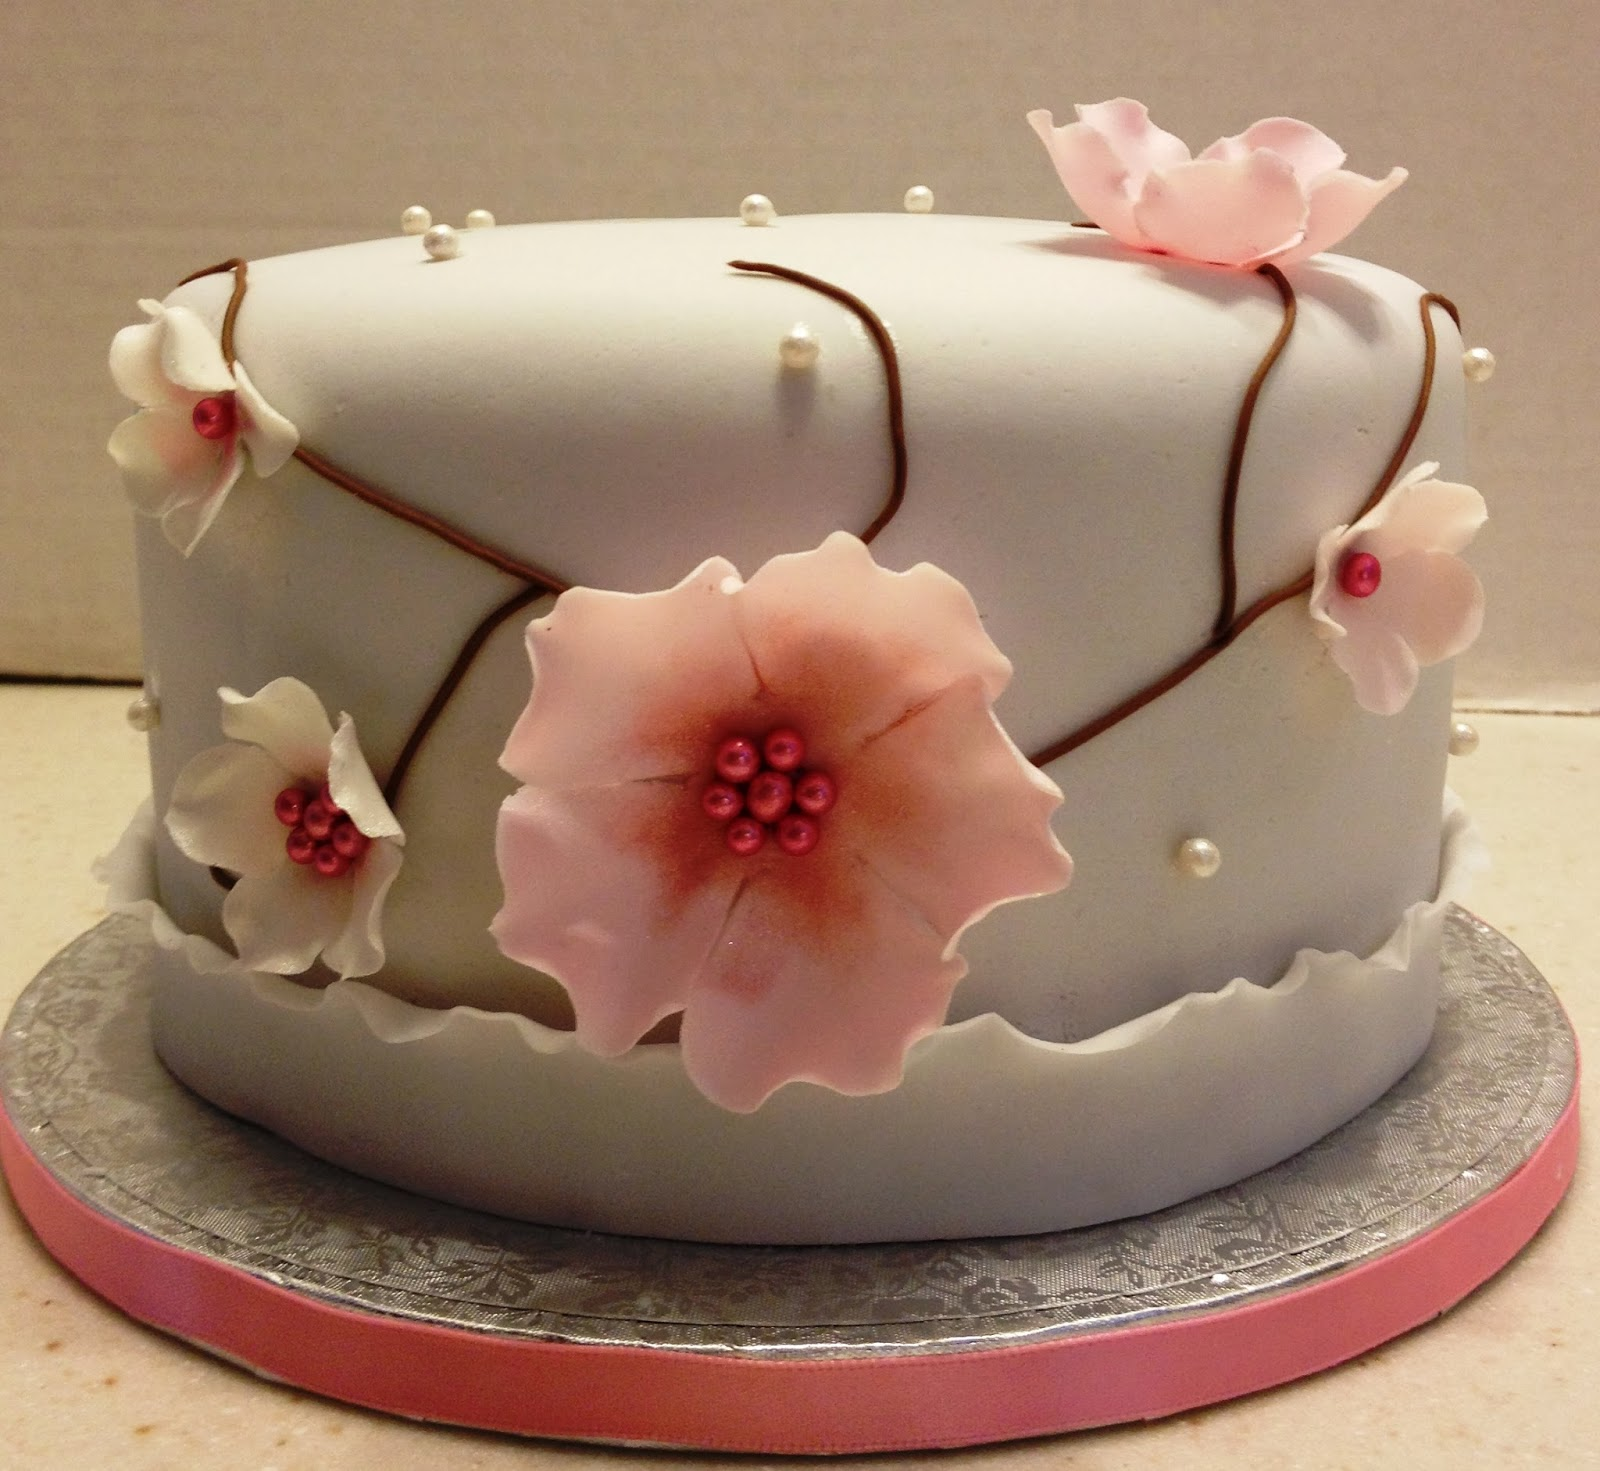 MaryMel Cakes: A pretty birthday cake